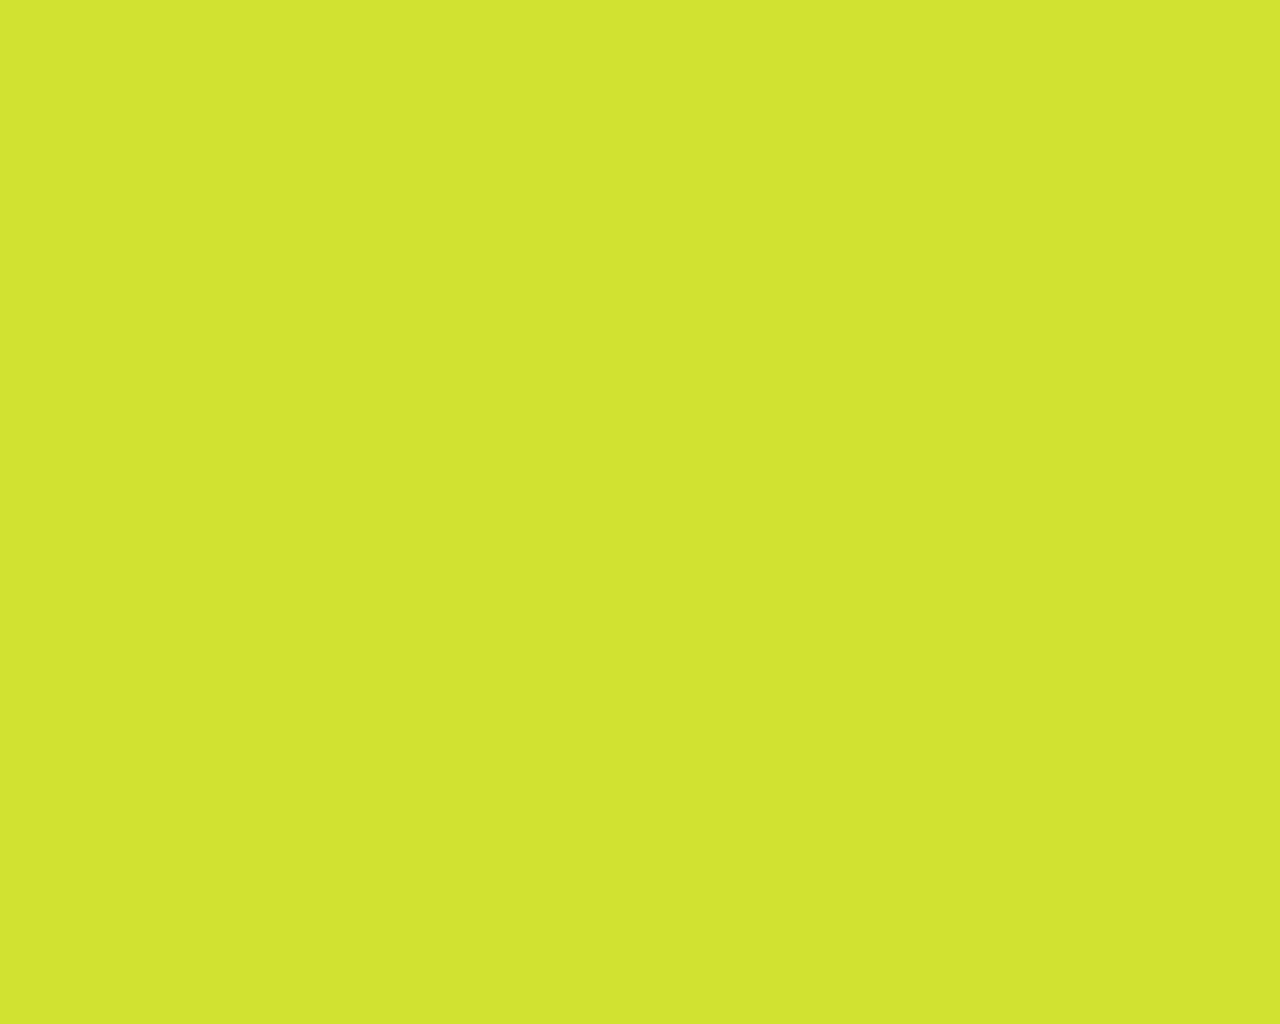 1280x1024 Pear Solid Color Background